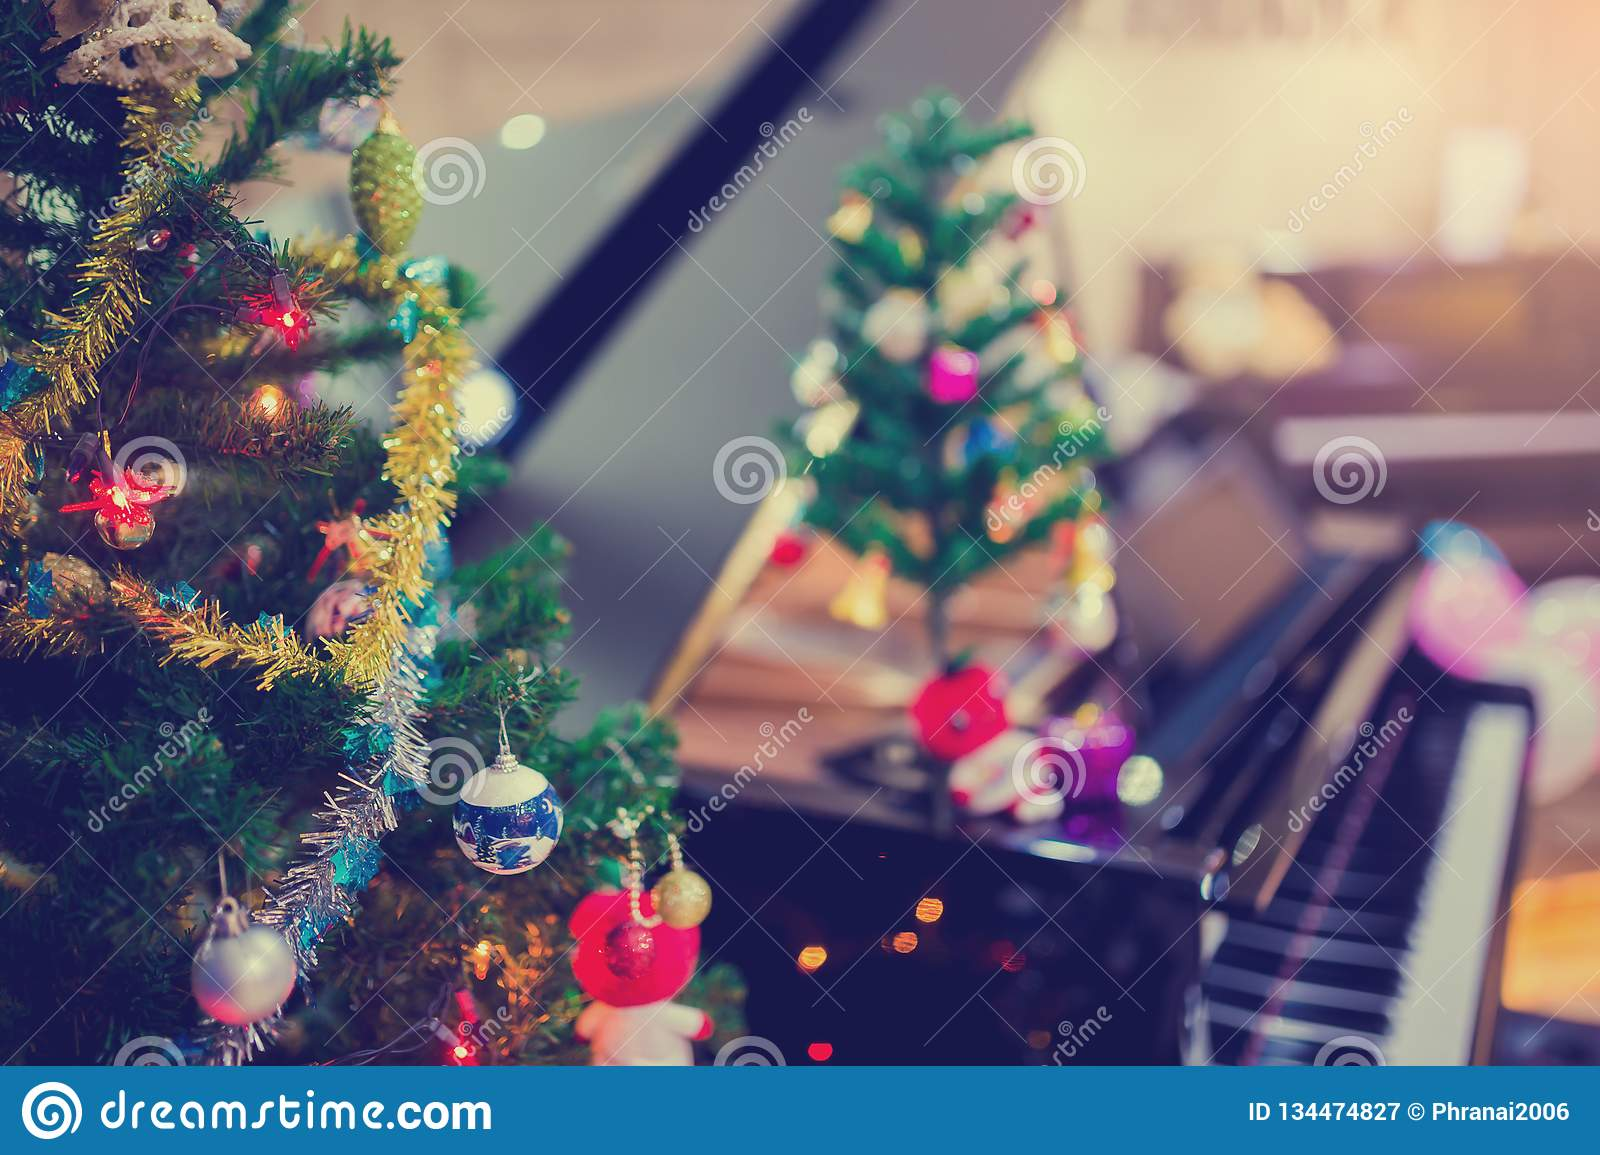 Piano and Christmas tree for christmas holiday background. New Year holidays background royalty free stock photography